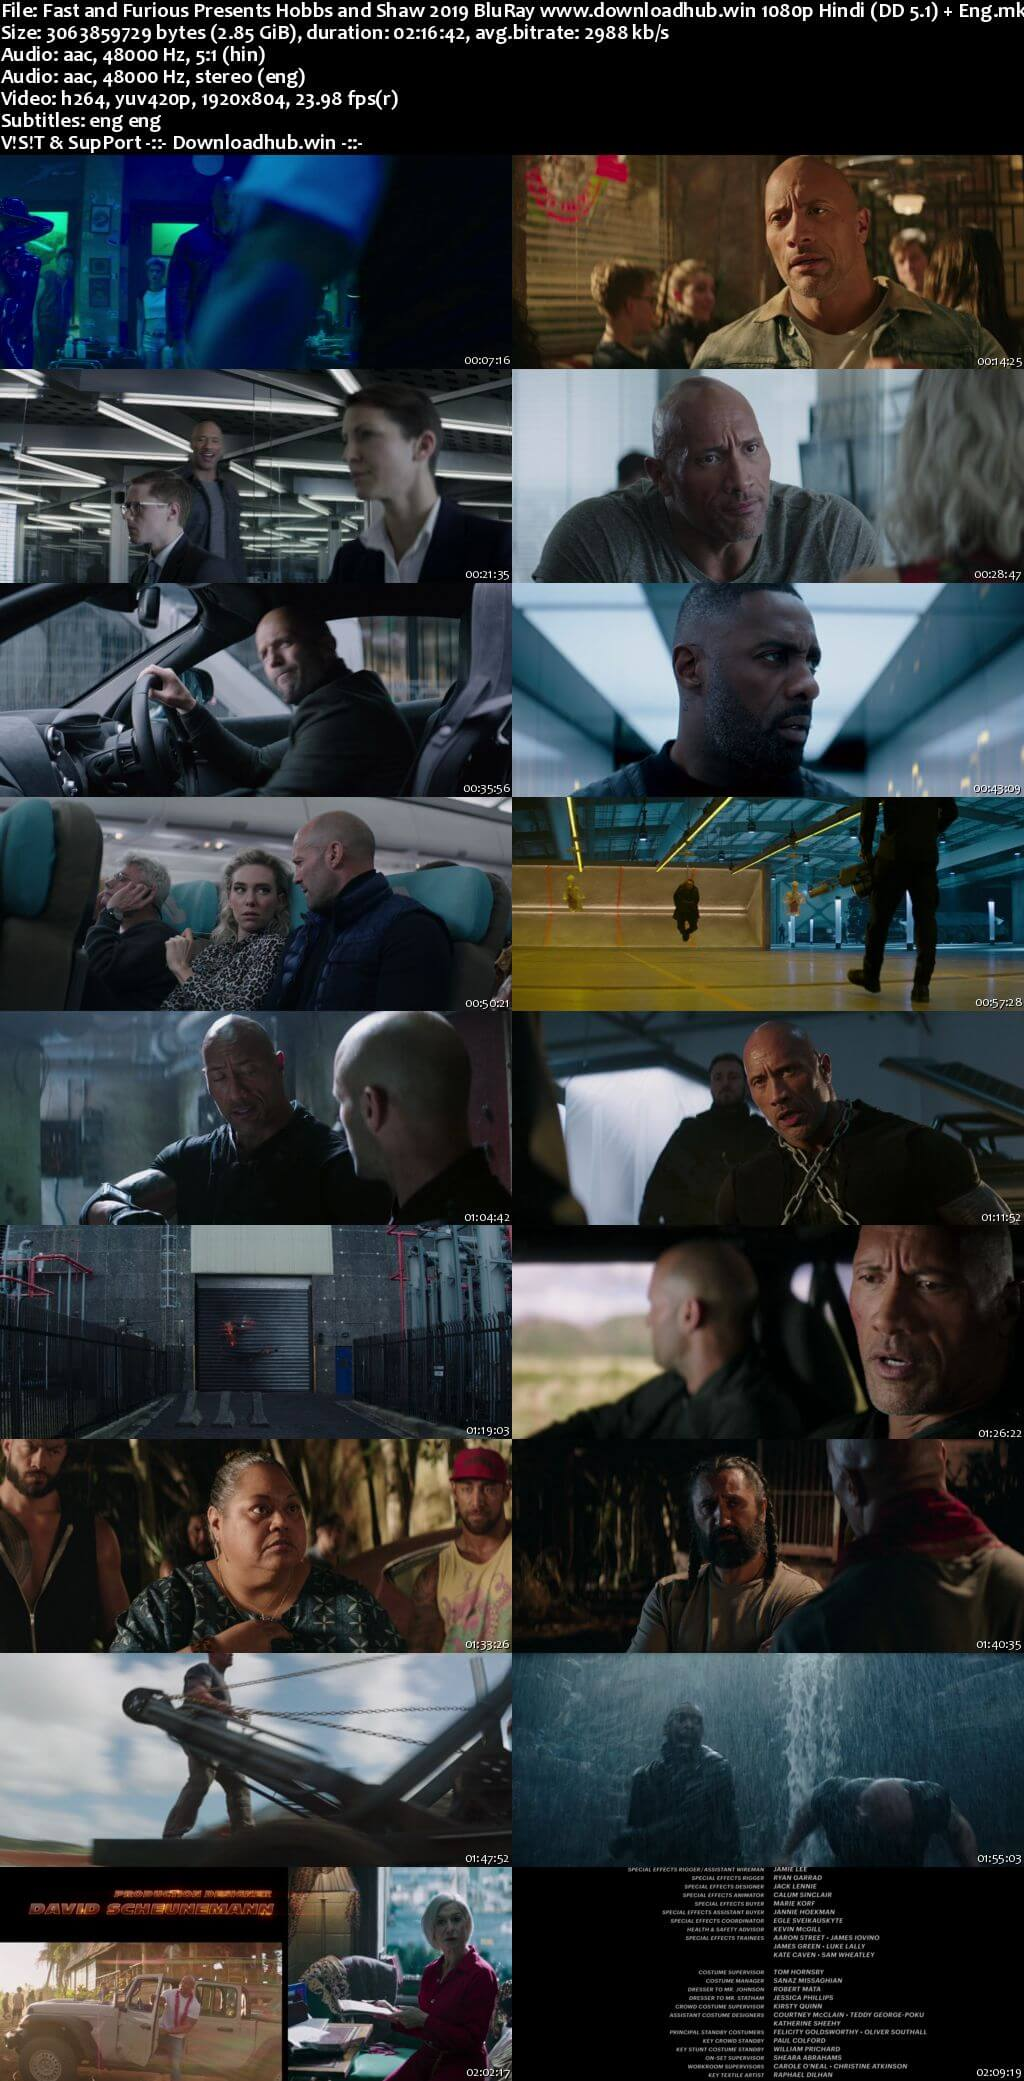 Fast And Furious Presents Hobbs And Shaw 2019 Hindi ORG Dual Audio 1080p BluRay ESubs